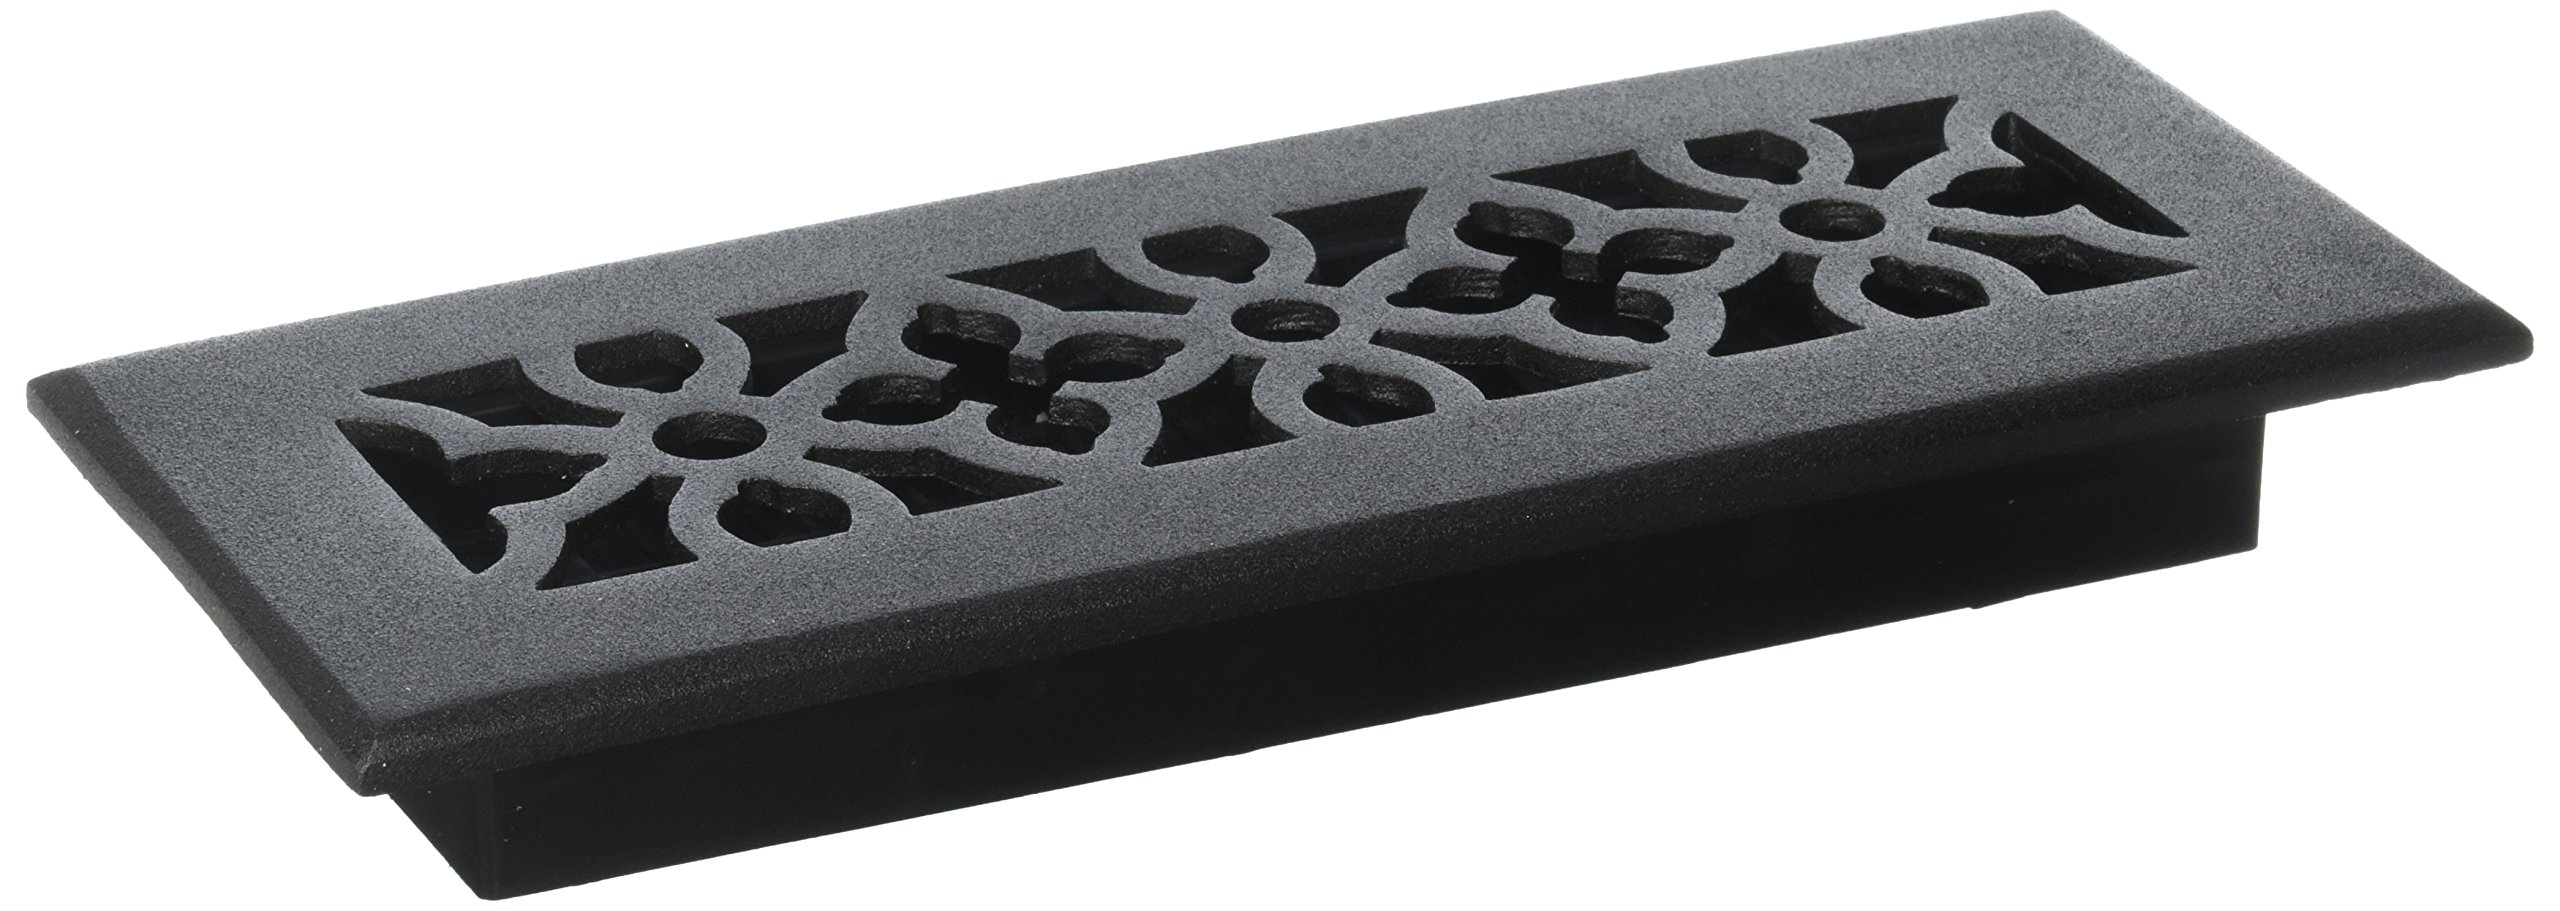 Decor Grates AGA310-BLK 3-Inch by 10-Inch Gothic Black Aluminum Floor Register